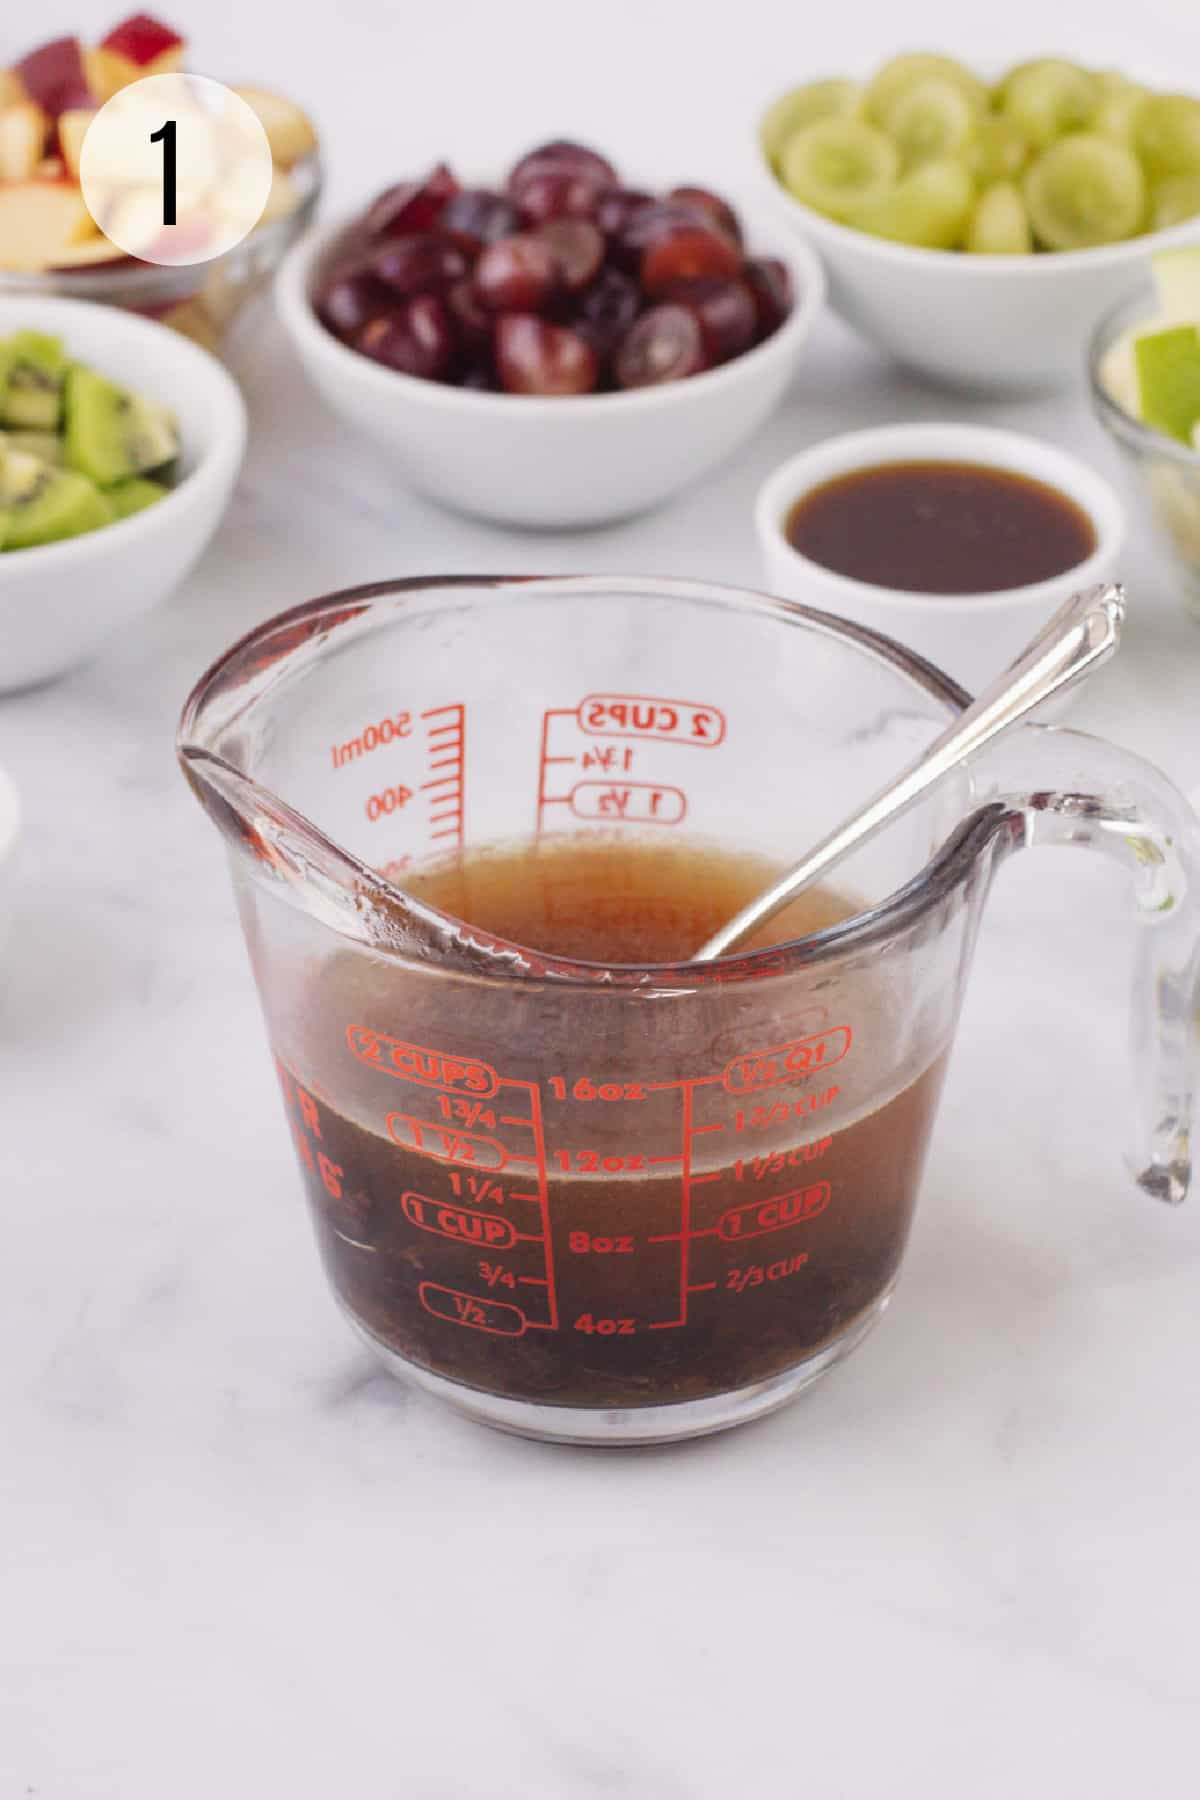 Glass measuring cup with water and dried cherries soaking and ingredients for Holiday Fruit Salad in bowls in background.